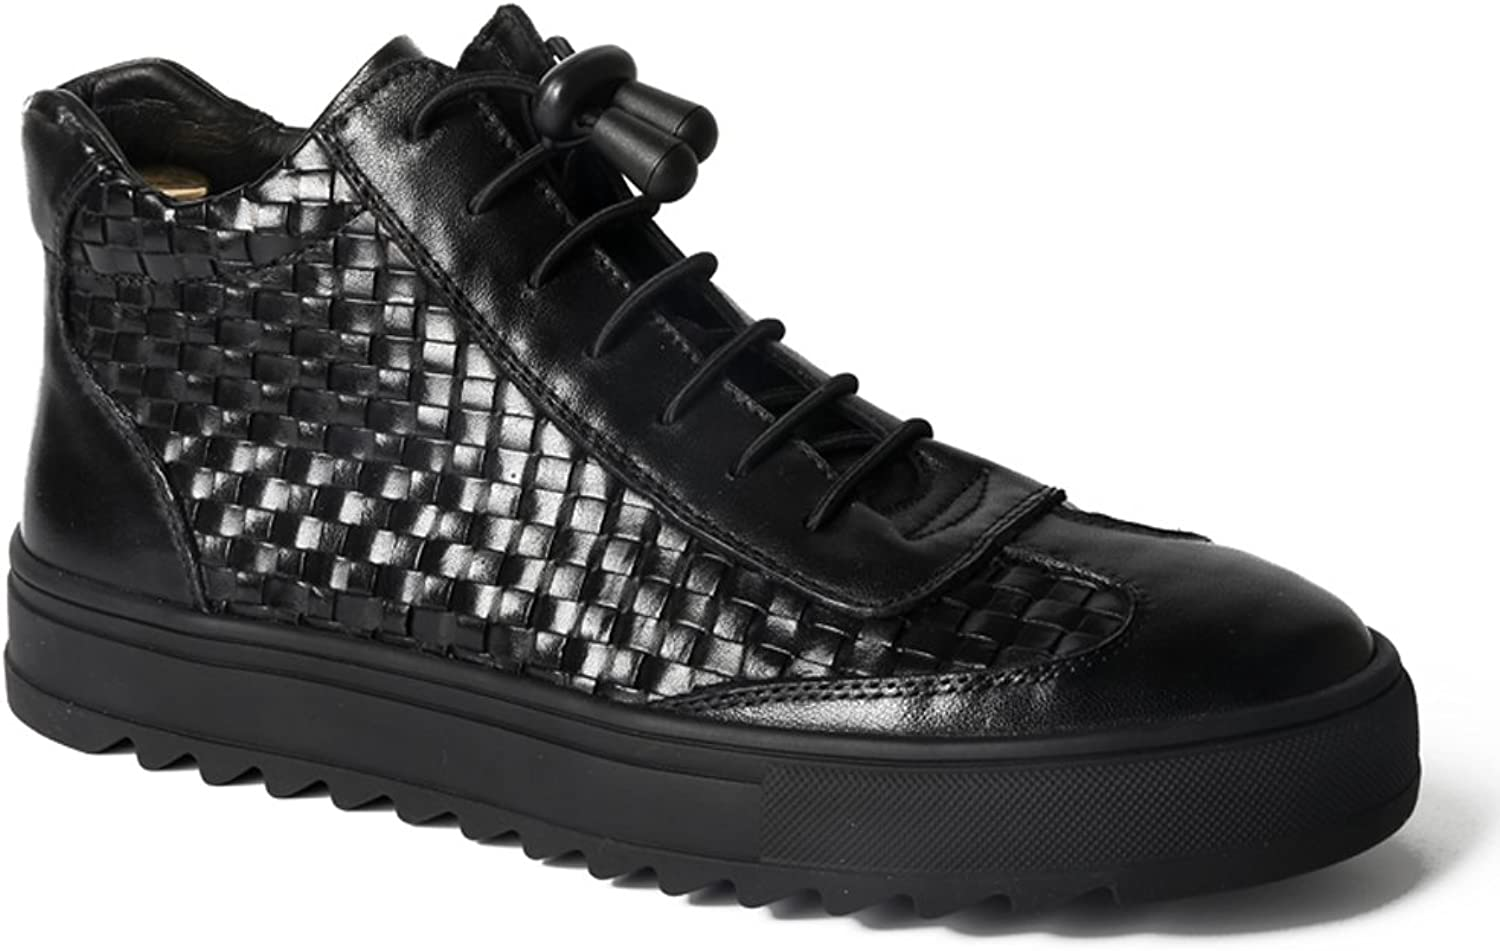 MedzRE Men's Check Detail Punk High shoes Casual Sneakers in Black Leather